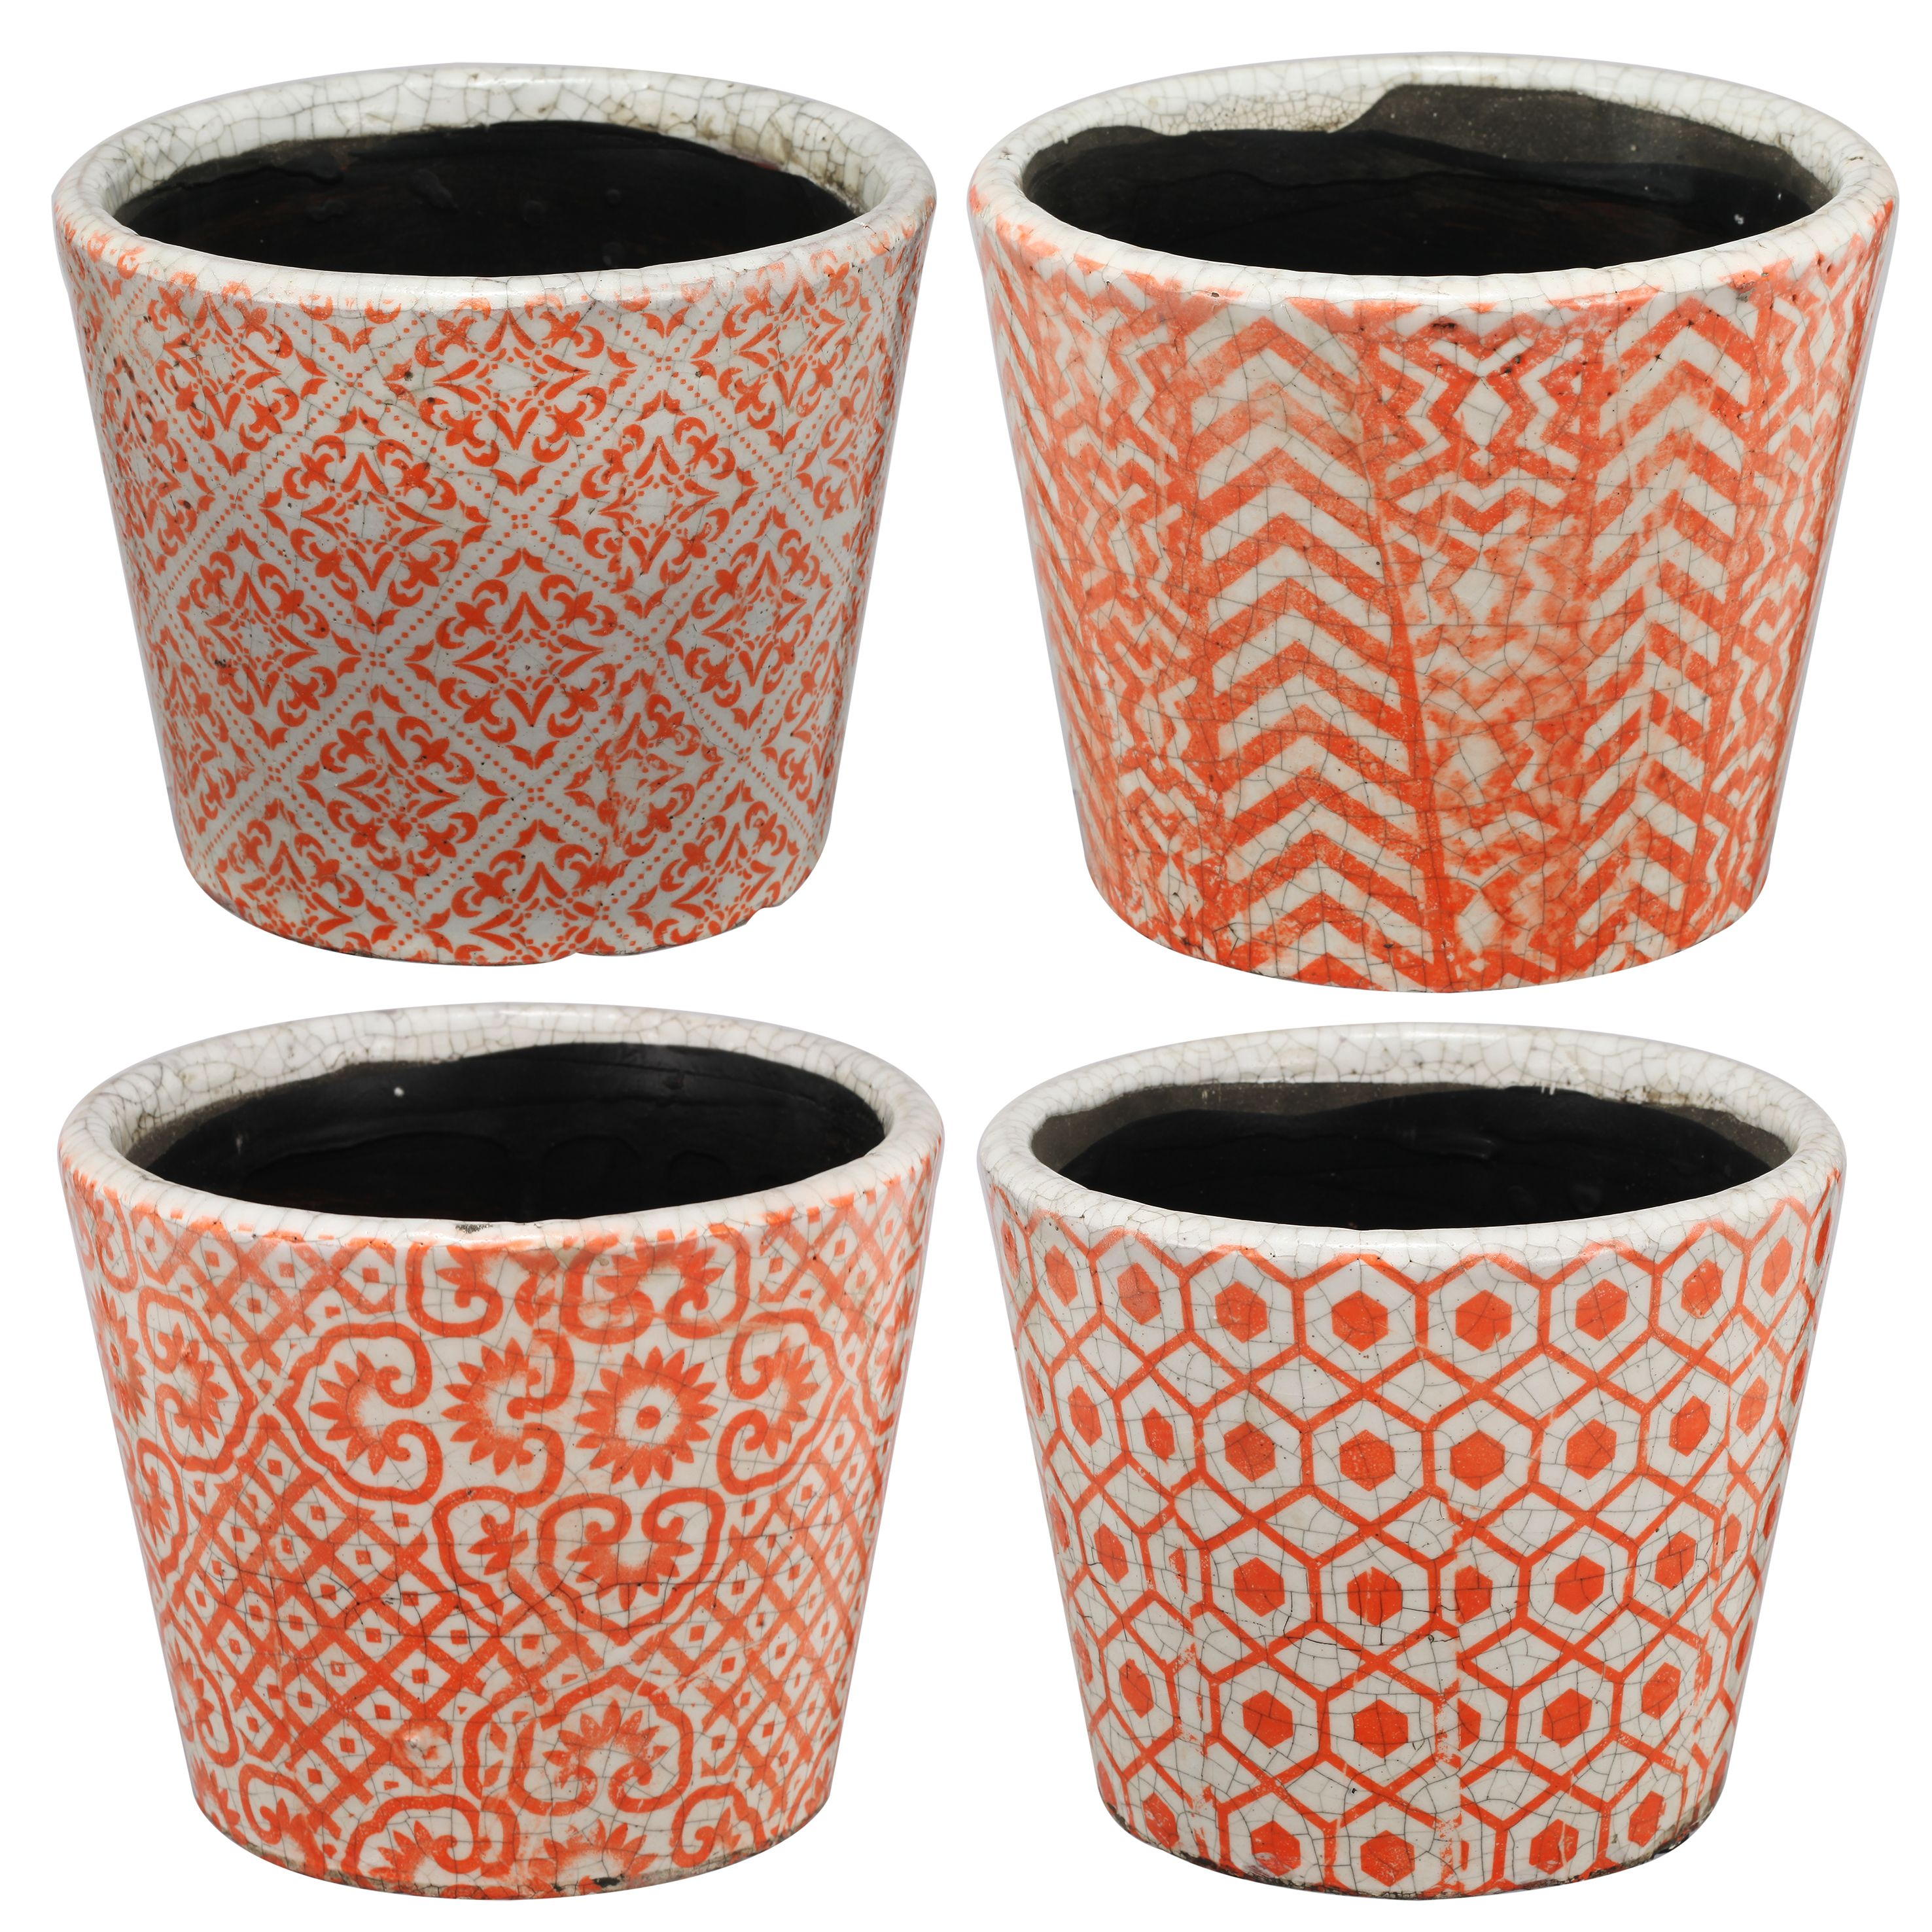 A&B Home Bailey Round Pot Planters, Orange, Small, Set of 4 by A&B Home